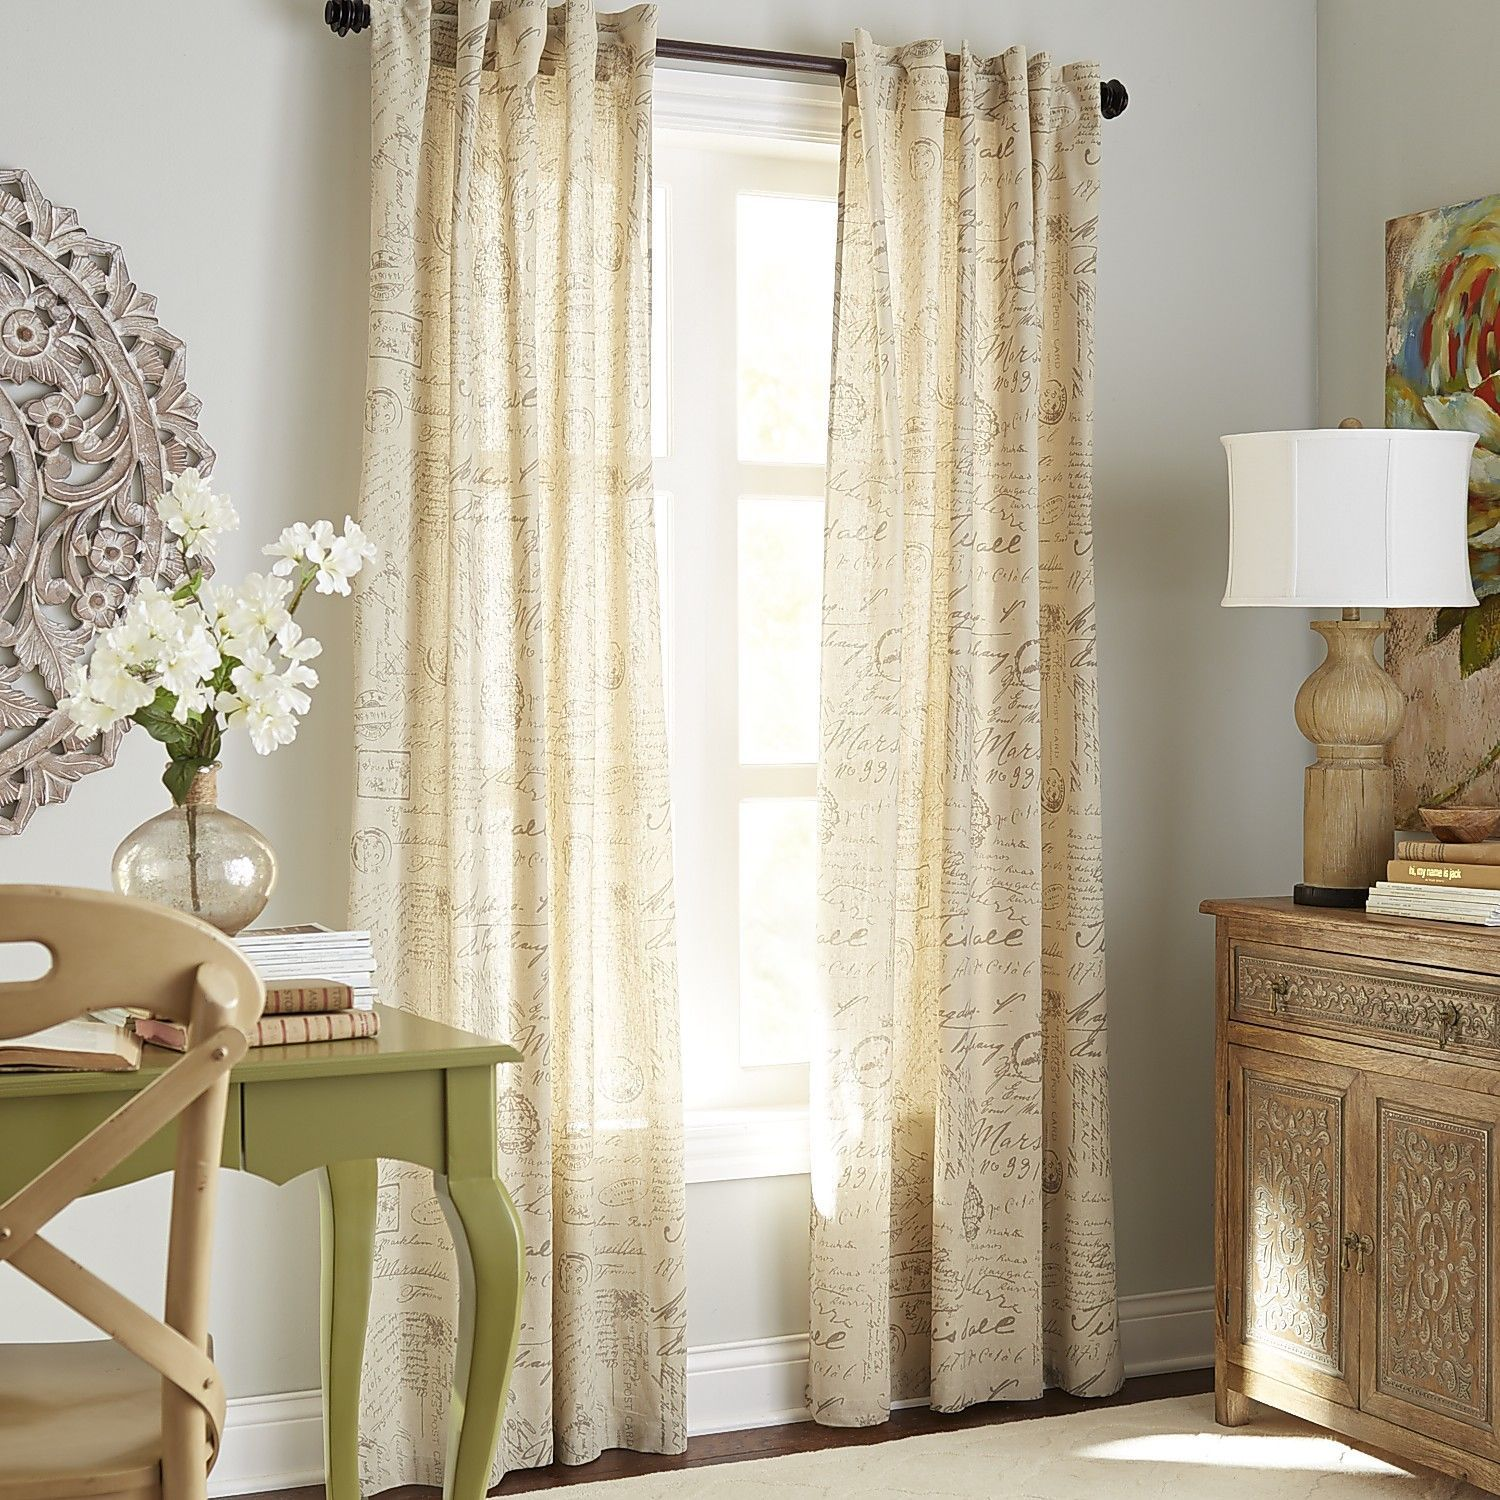 Amelie curtain natural pier imports living room pinterest